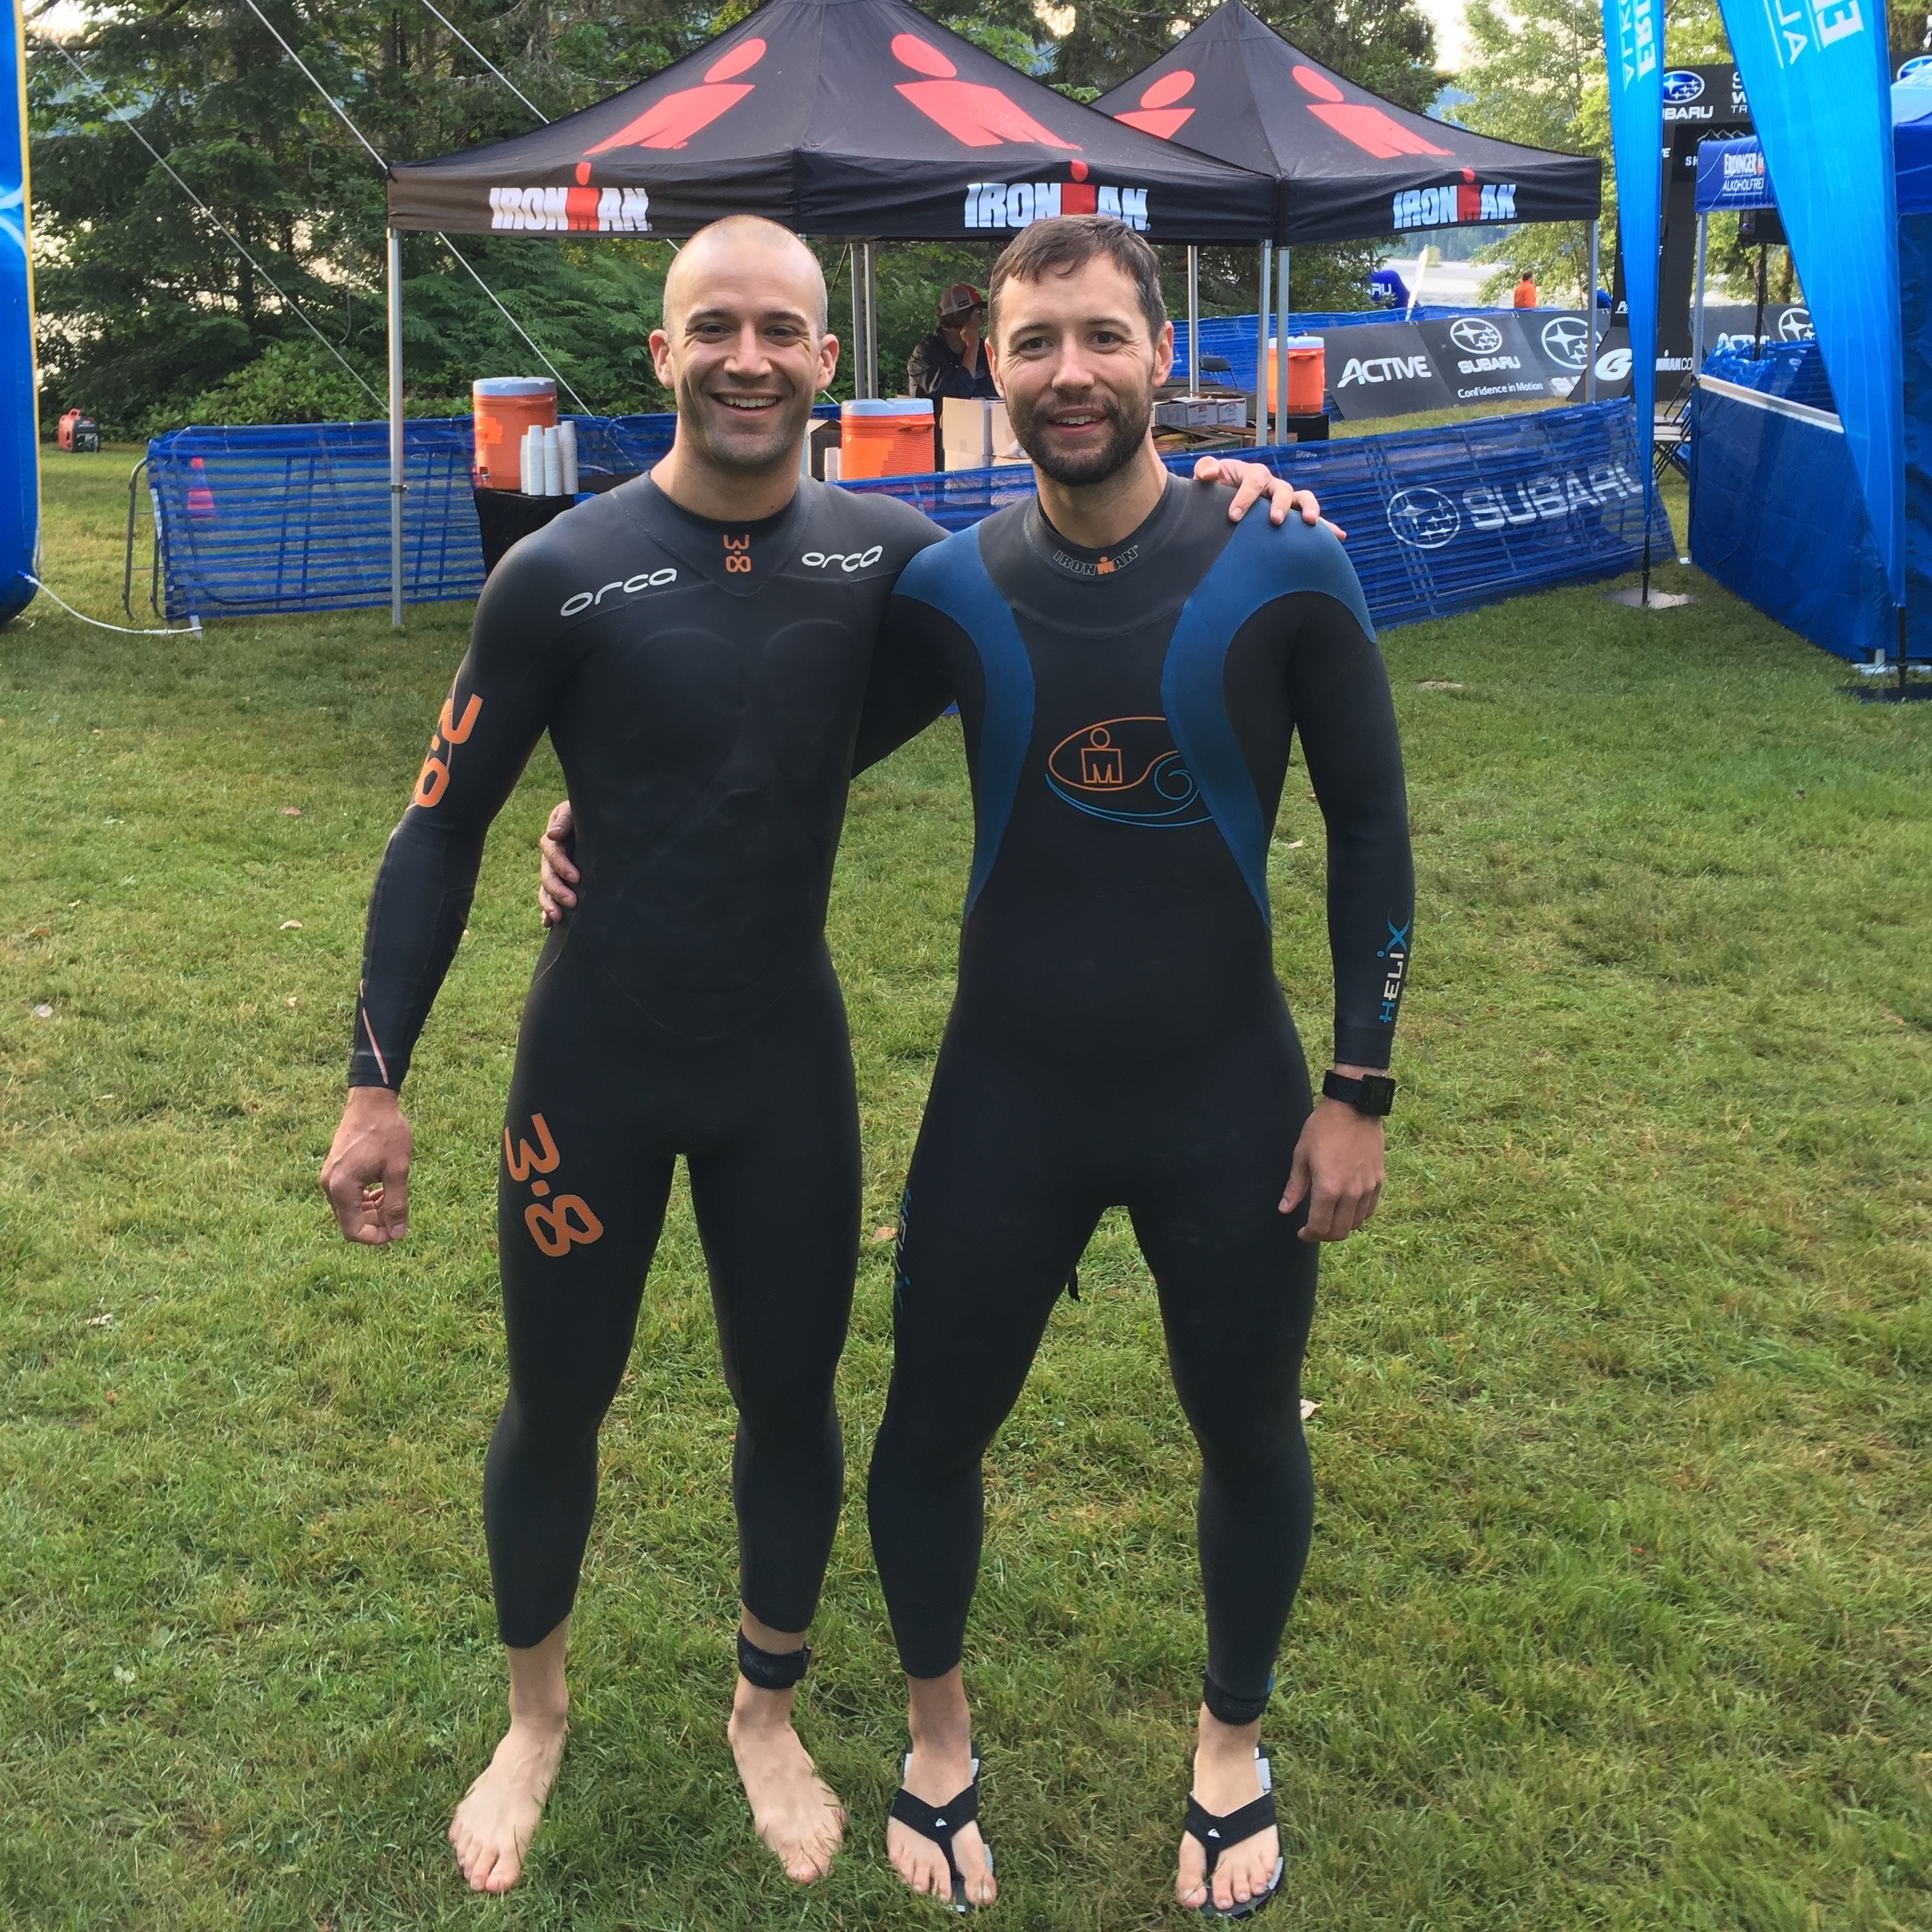 Plenty of time for the wetsuit change